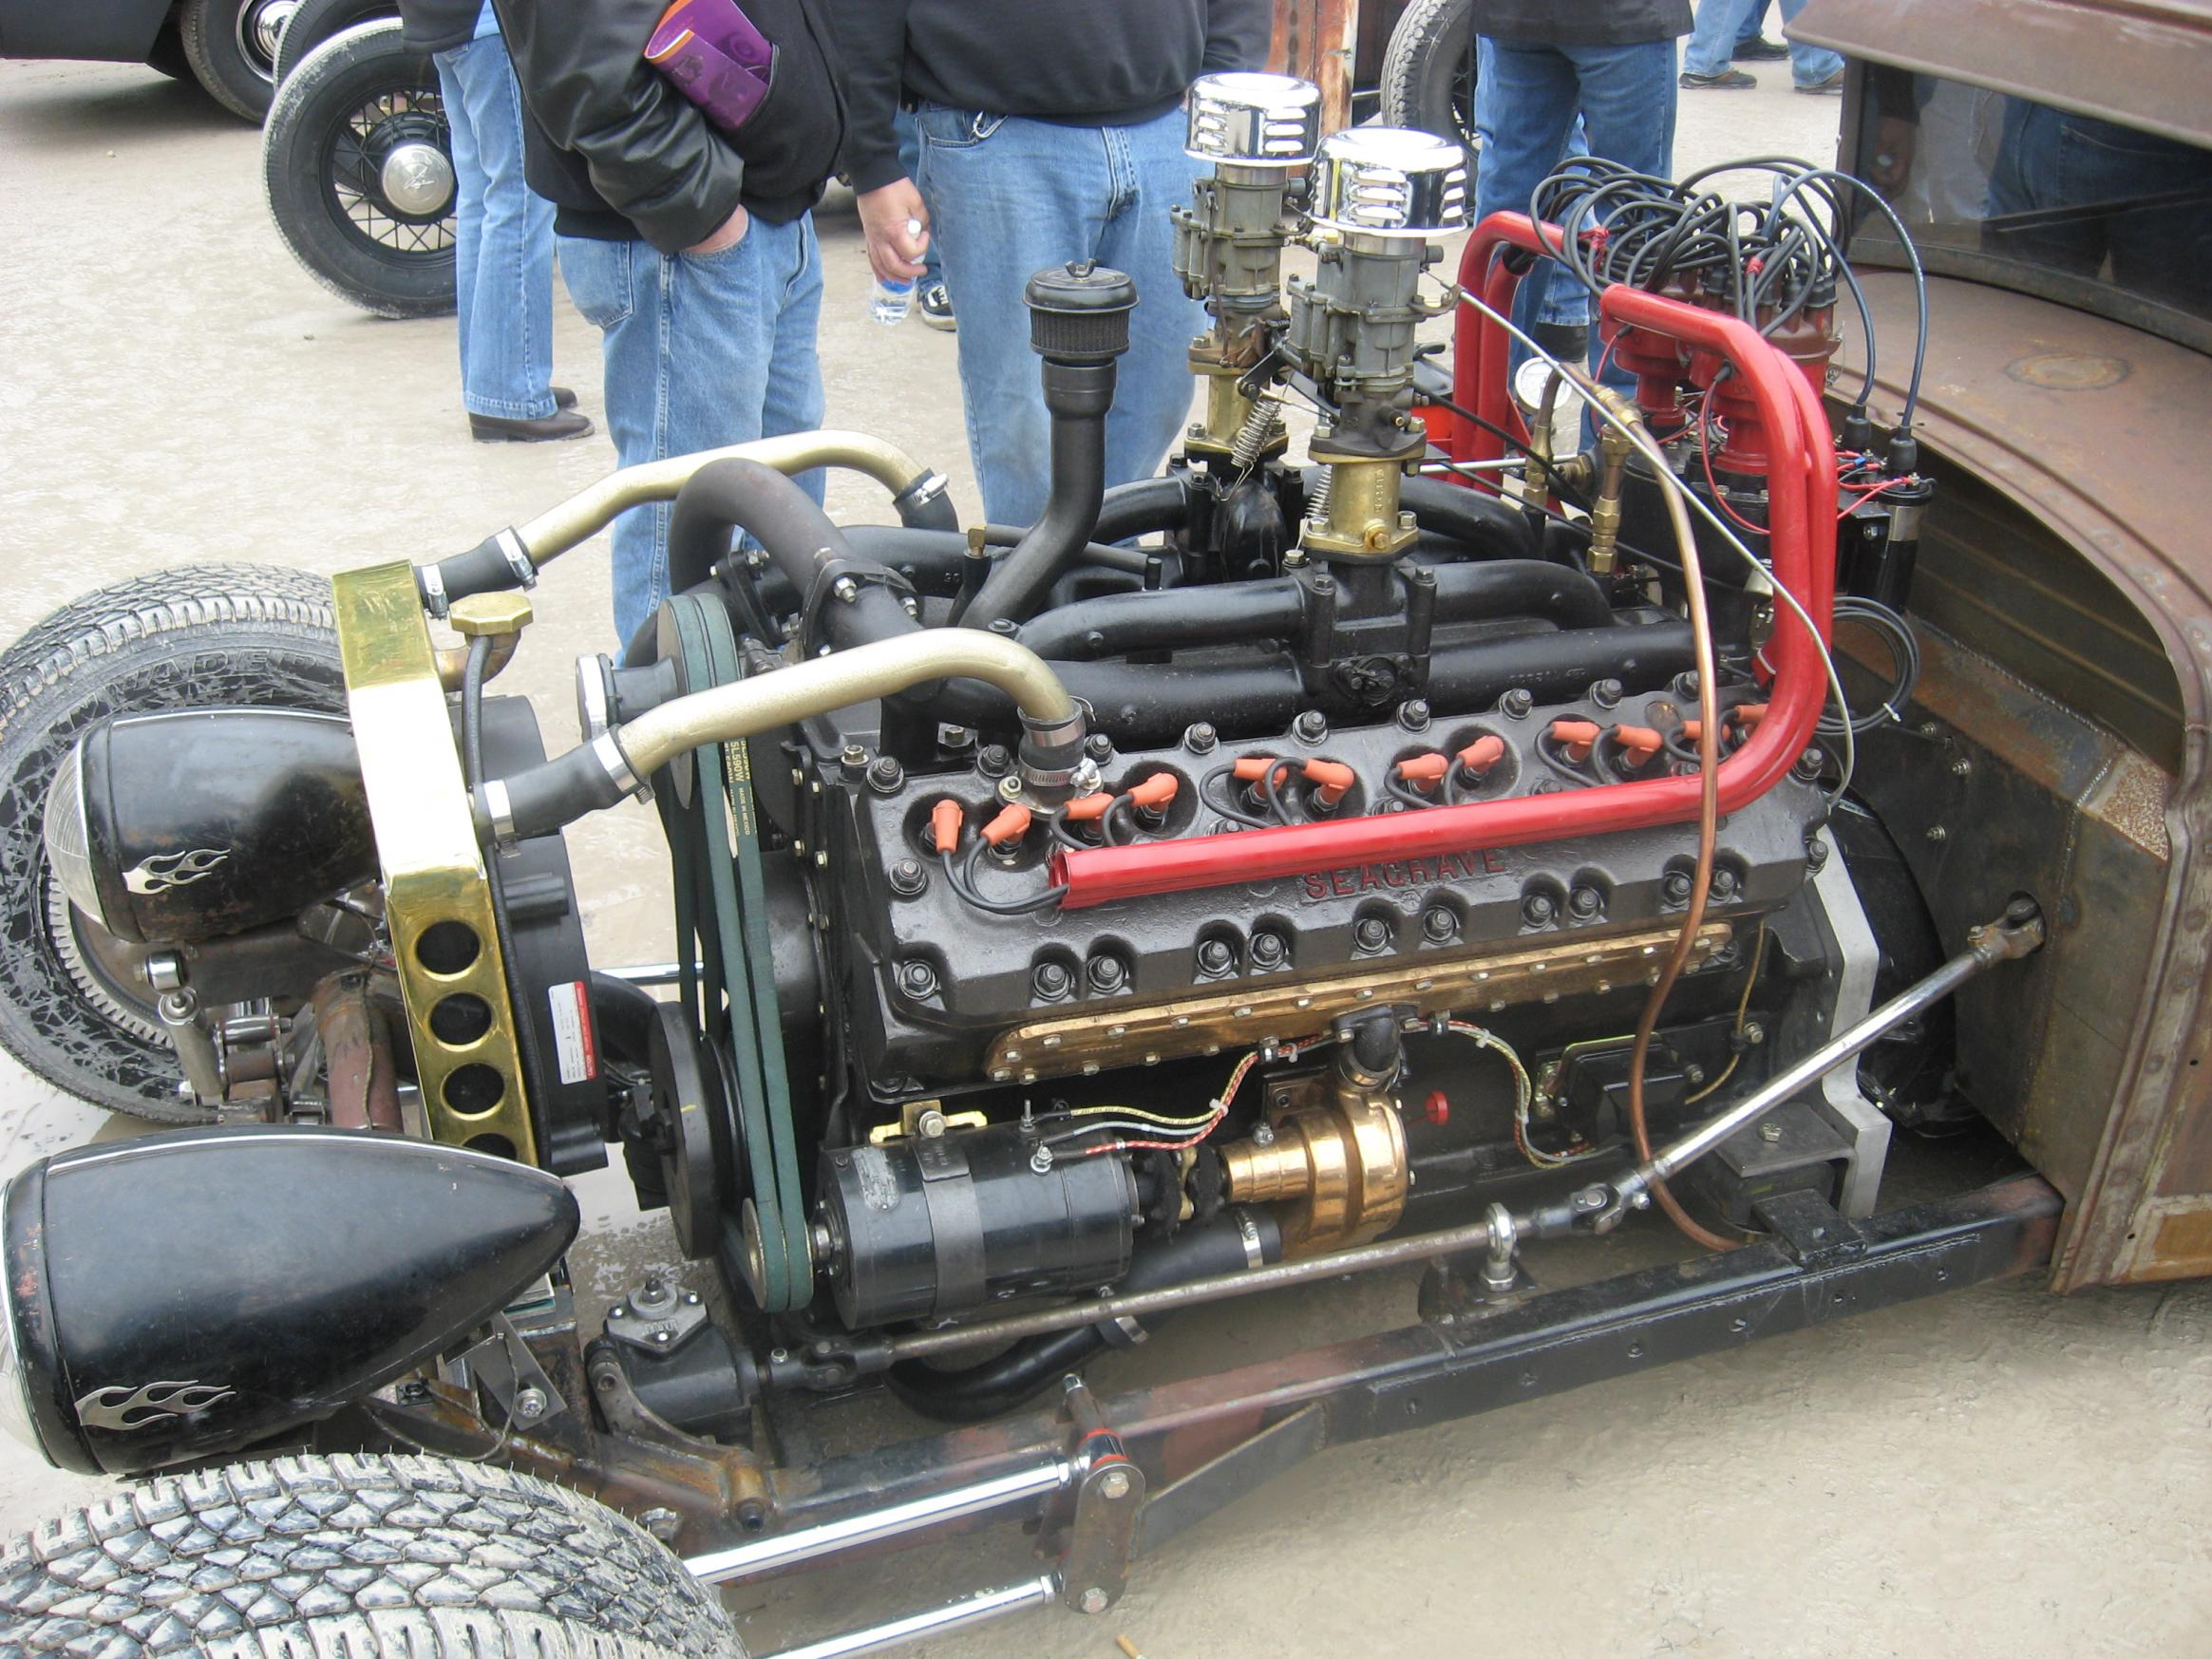 Seagrave V12 rat-rod, shot 10.